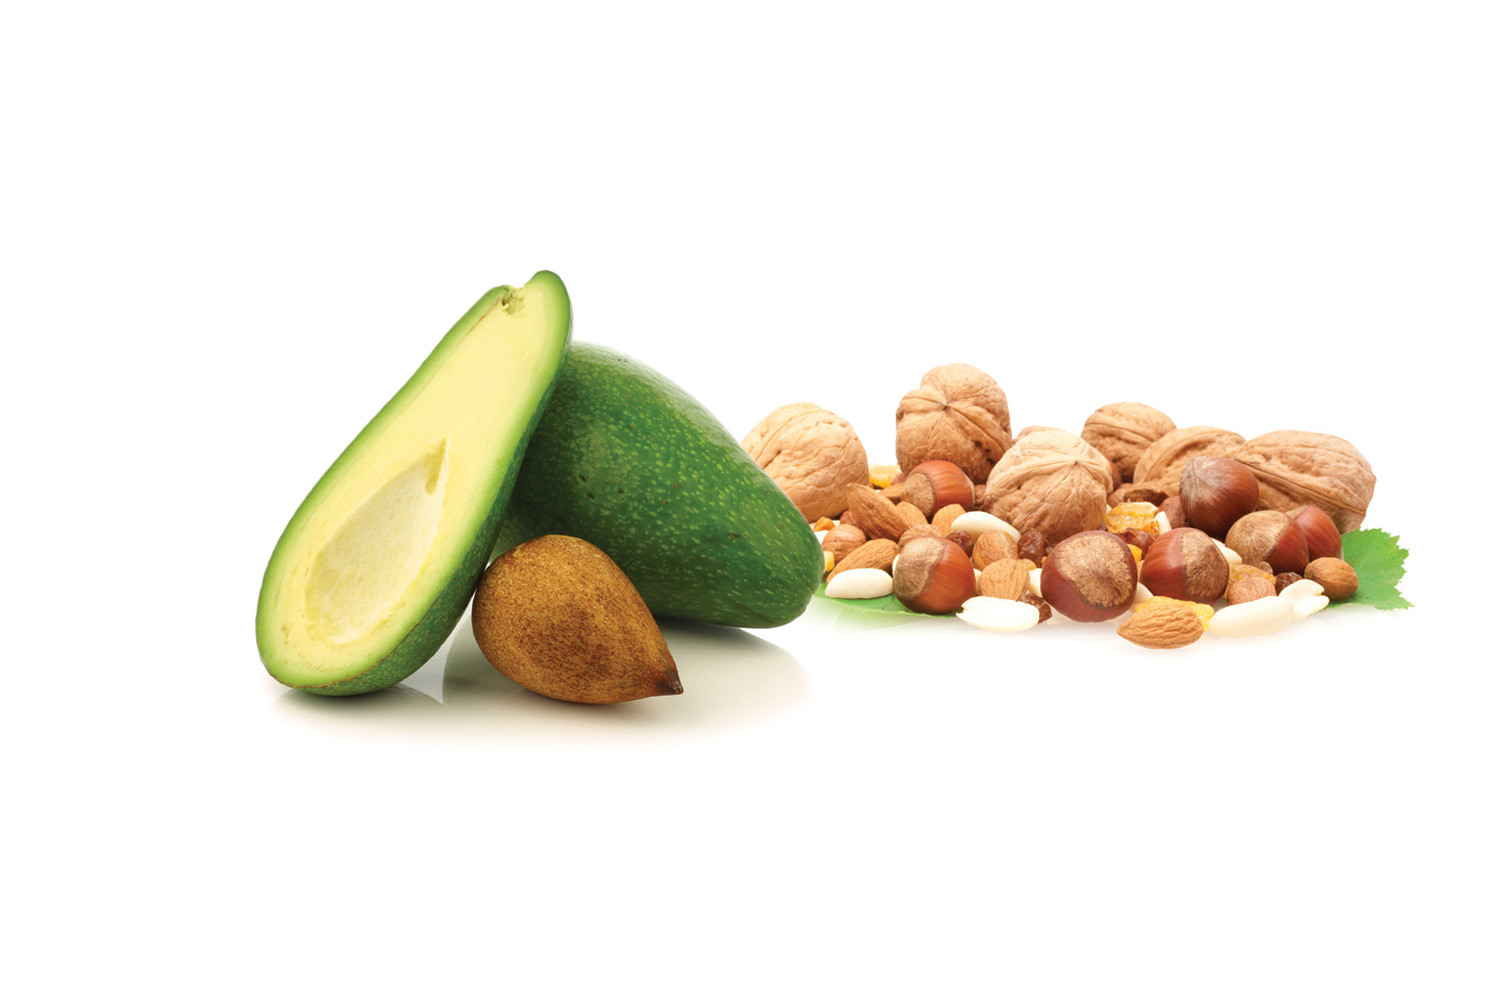 The Heart-Healthy Fats advise